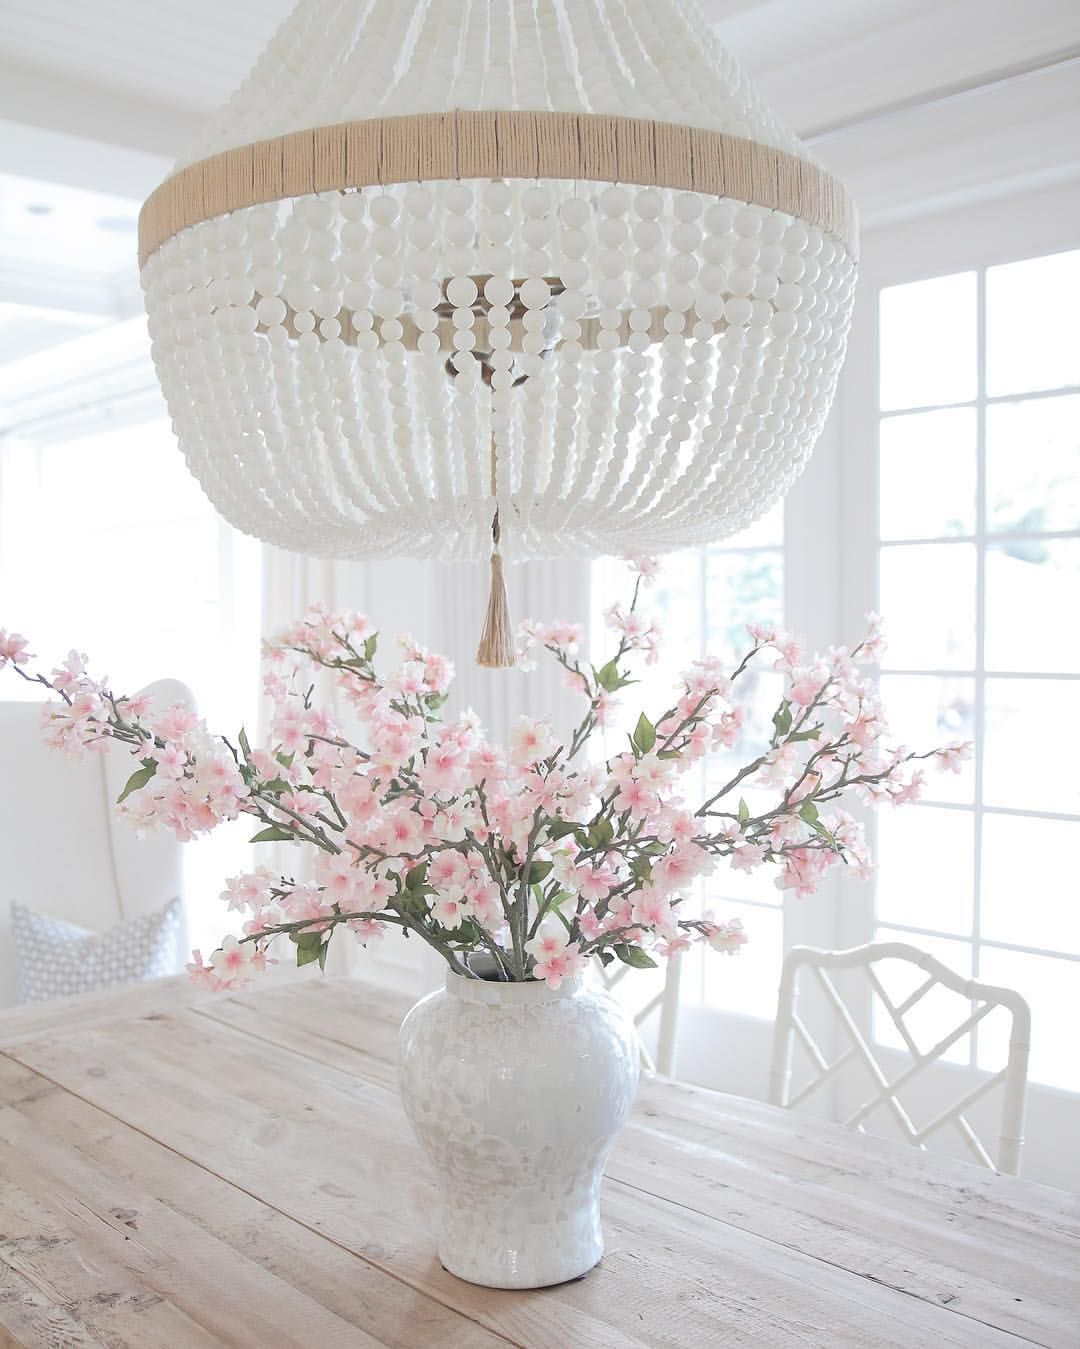 Coastal style hamptons style white vase blossoms trestle table bright white home of js home design beaded chandelier from ro sham beaux arubaitofo Gallery